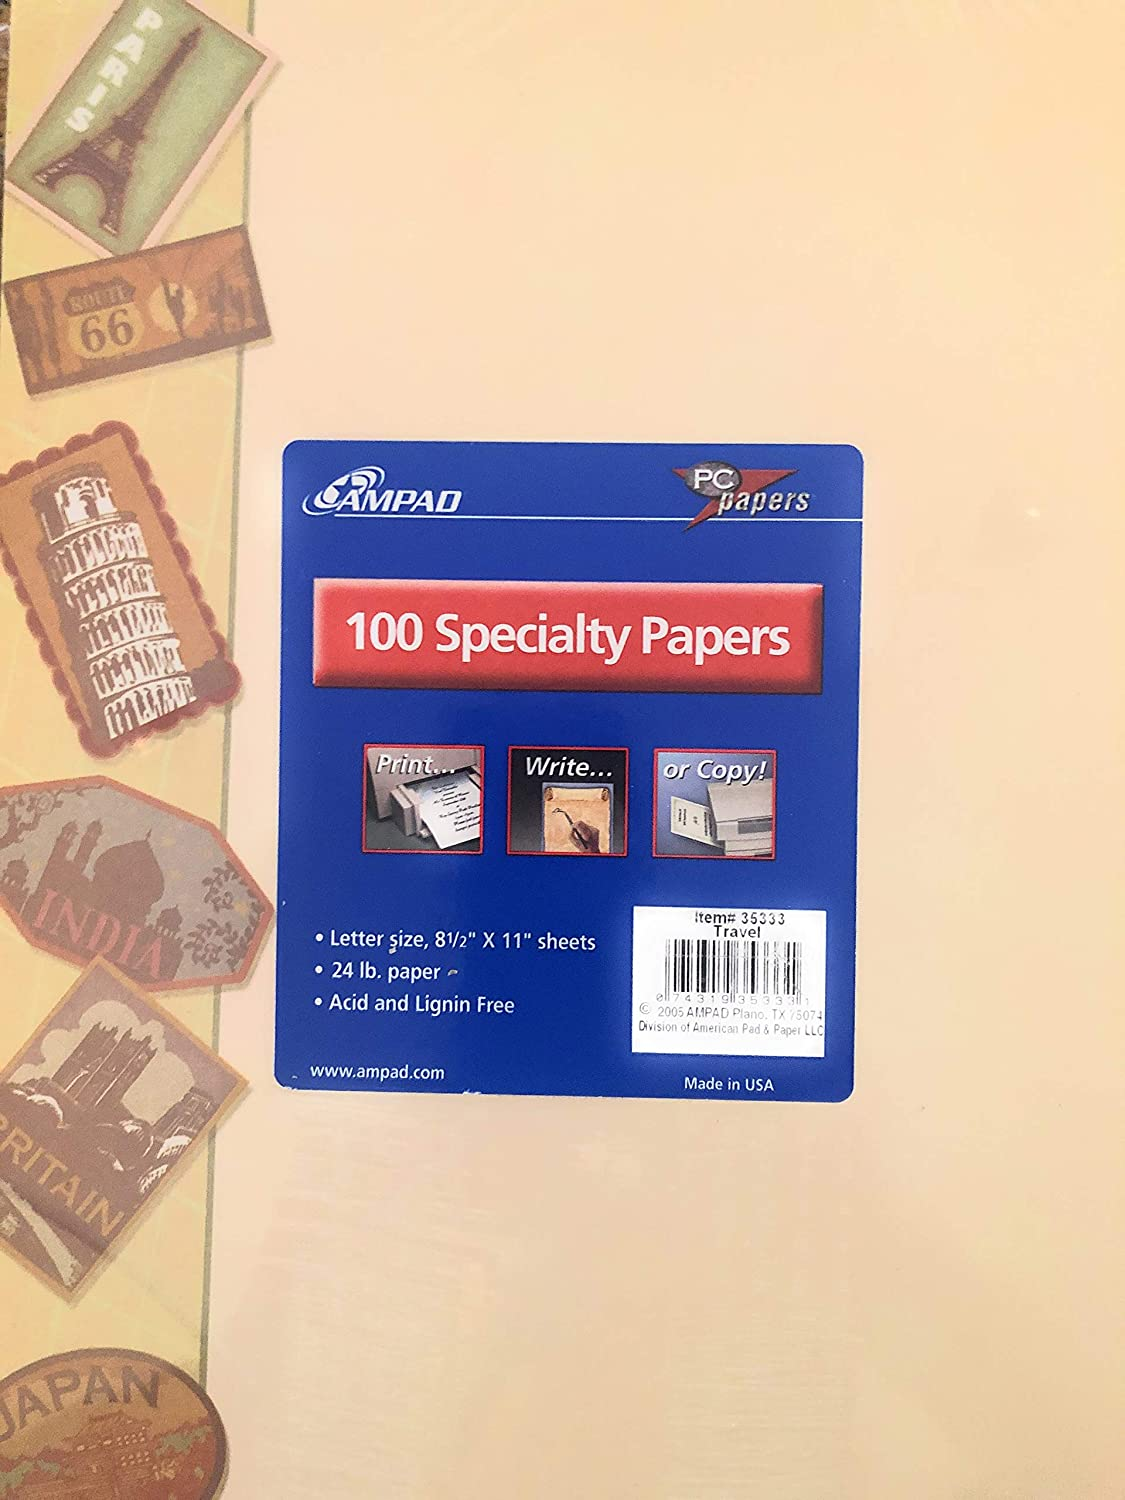 AMPAD SPECIALTY PAPER with TRAVEL BORDER